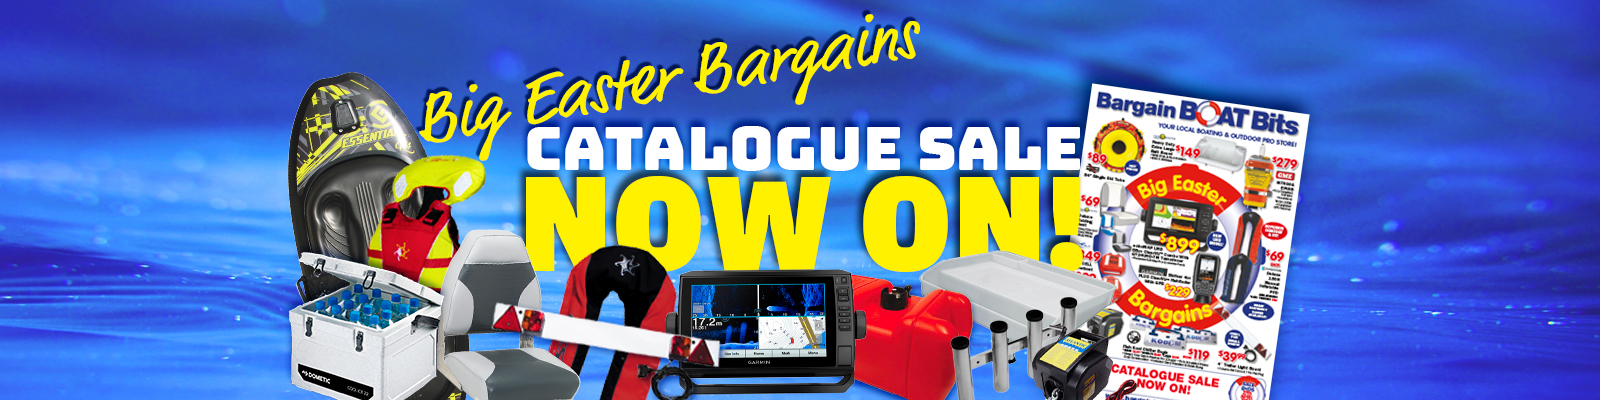 Reef Marine Bargain Boat Bits Easter Cayalogue